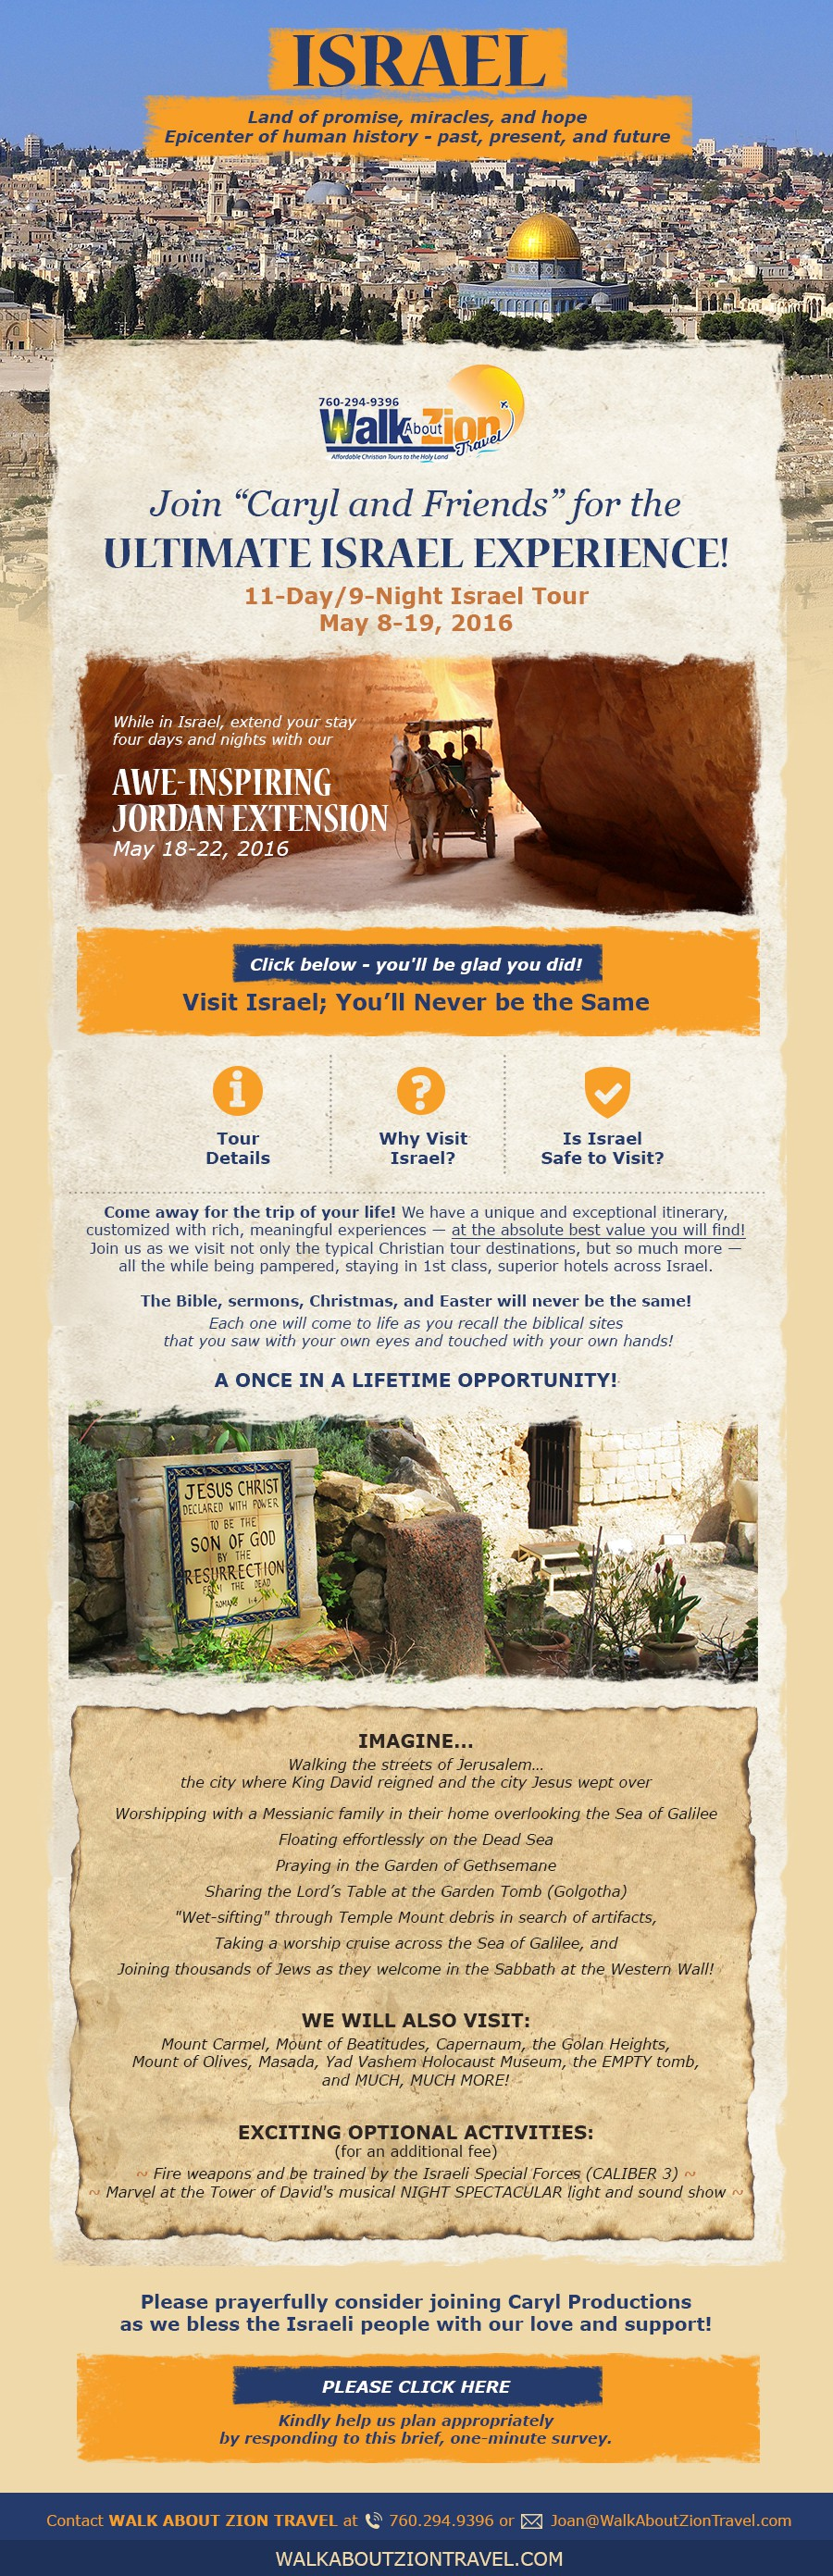 Create an email template for a travel agency for tours to Israel